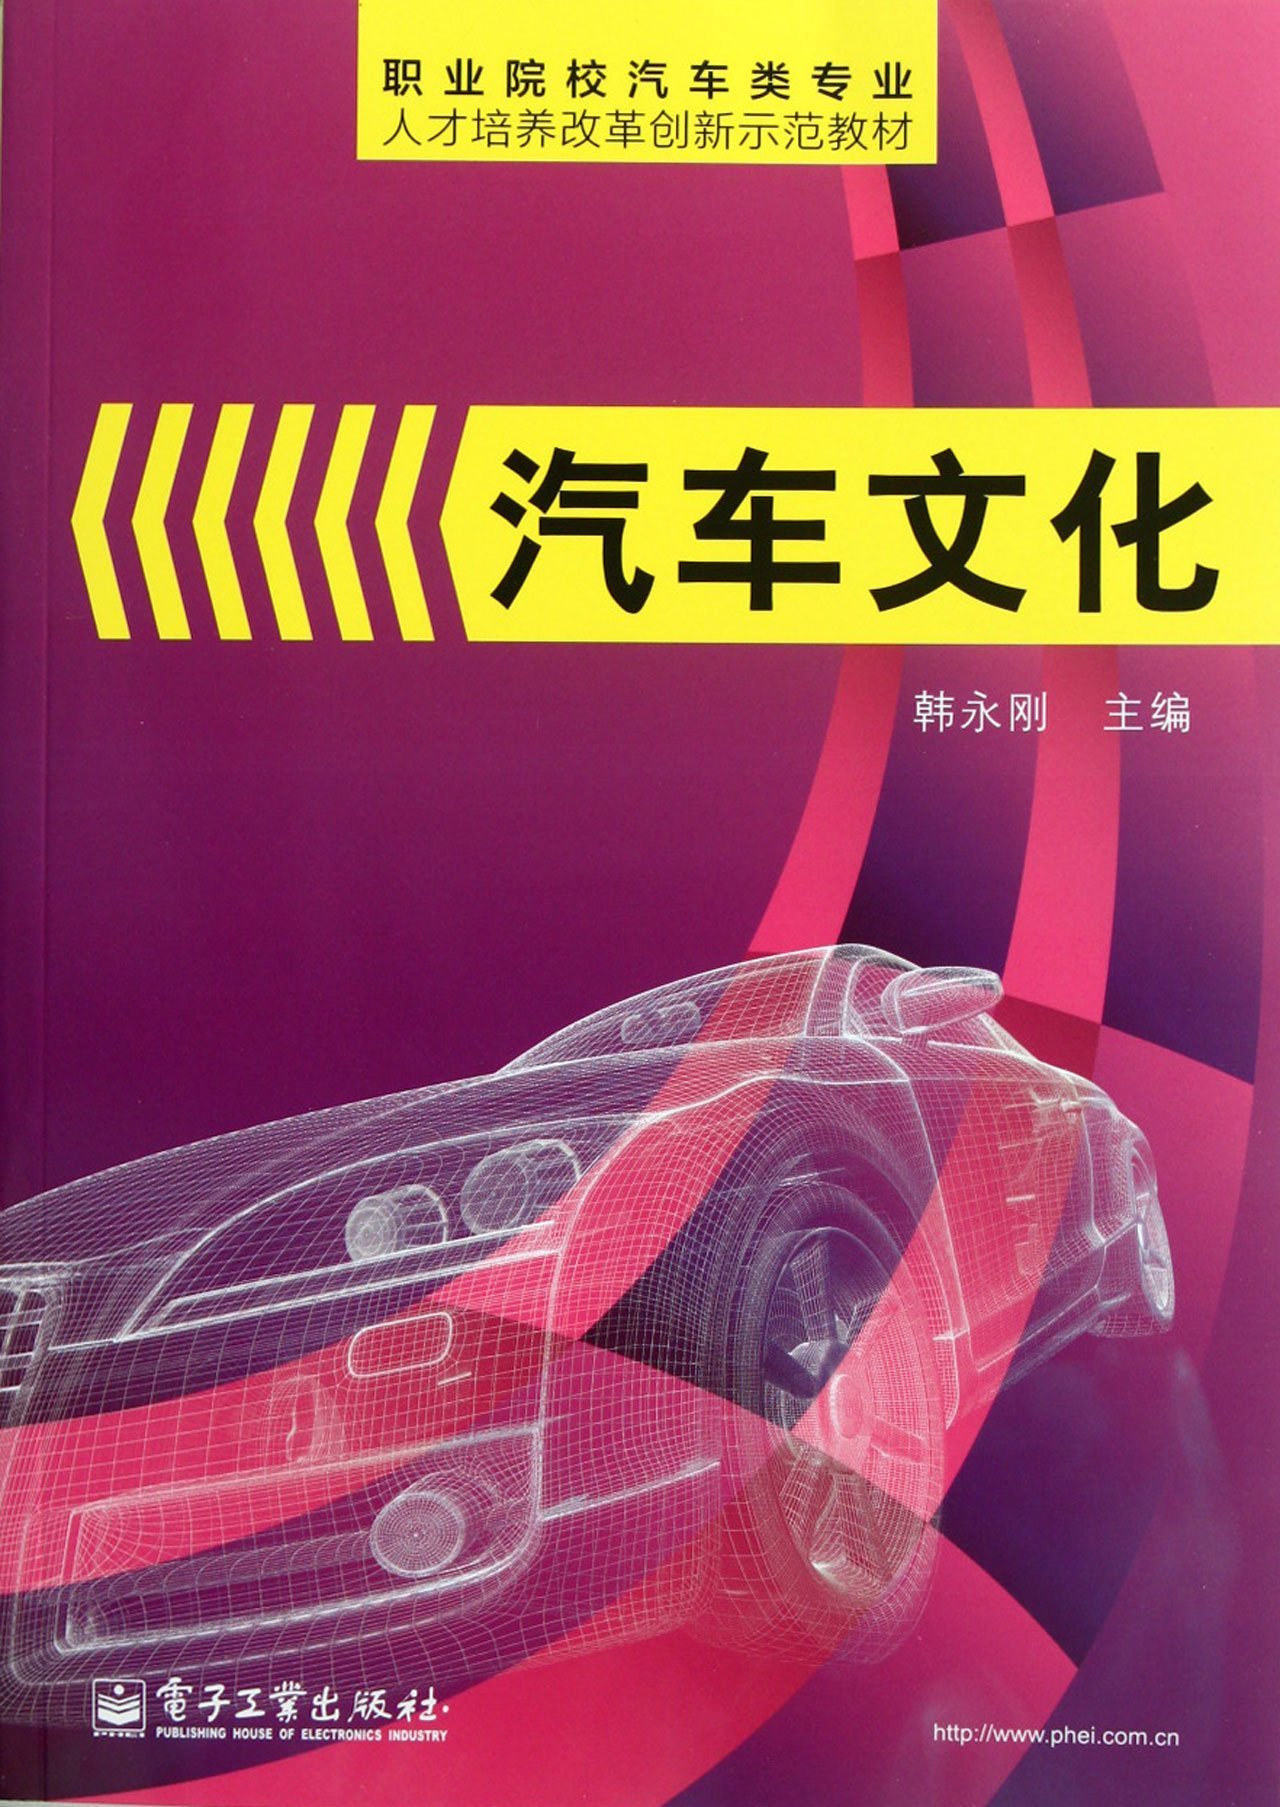 Auto Culture (Chinese Edition) ebook